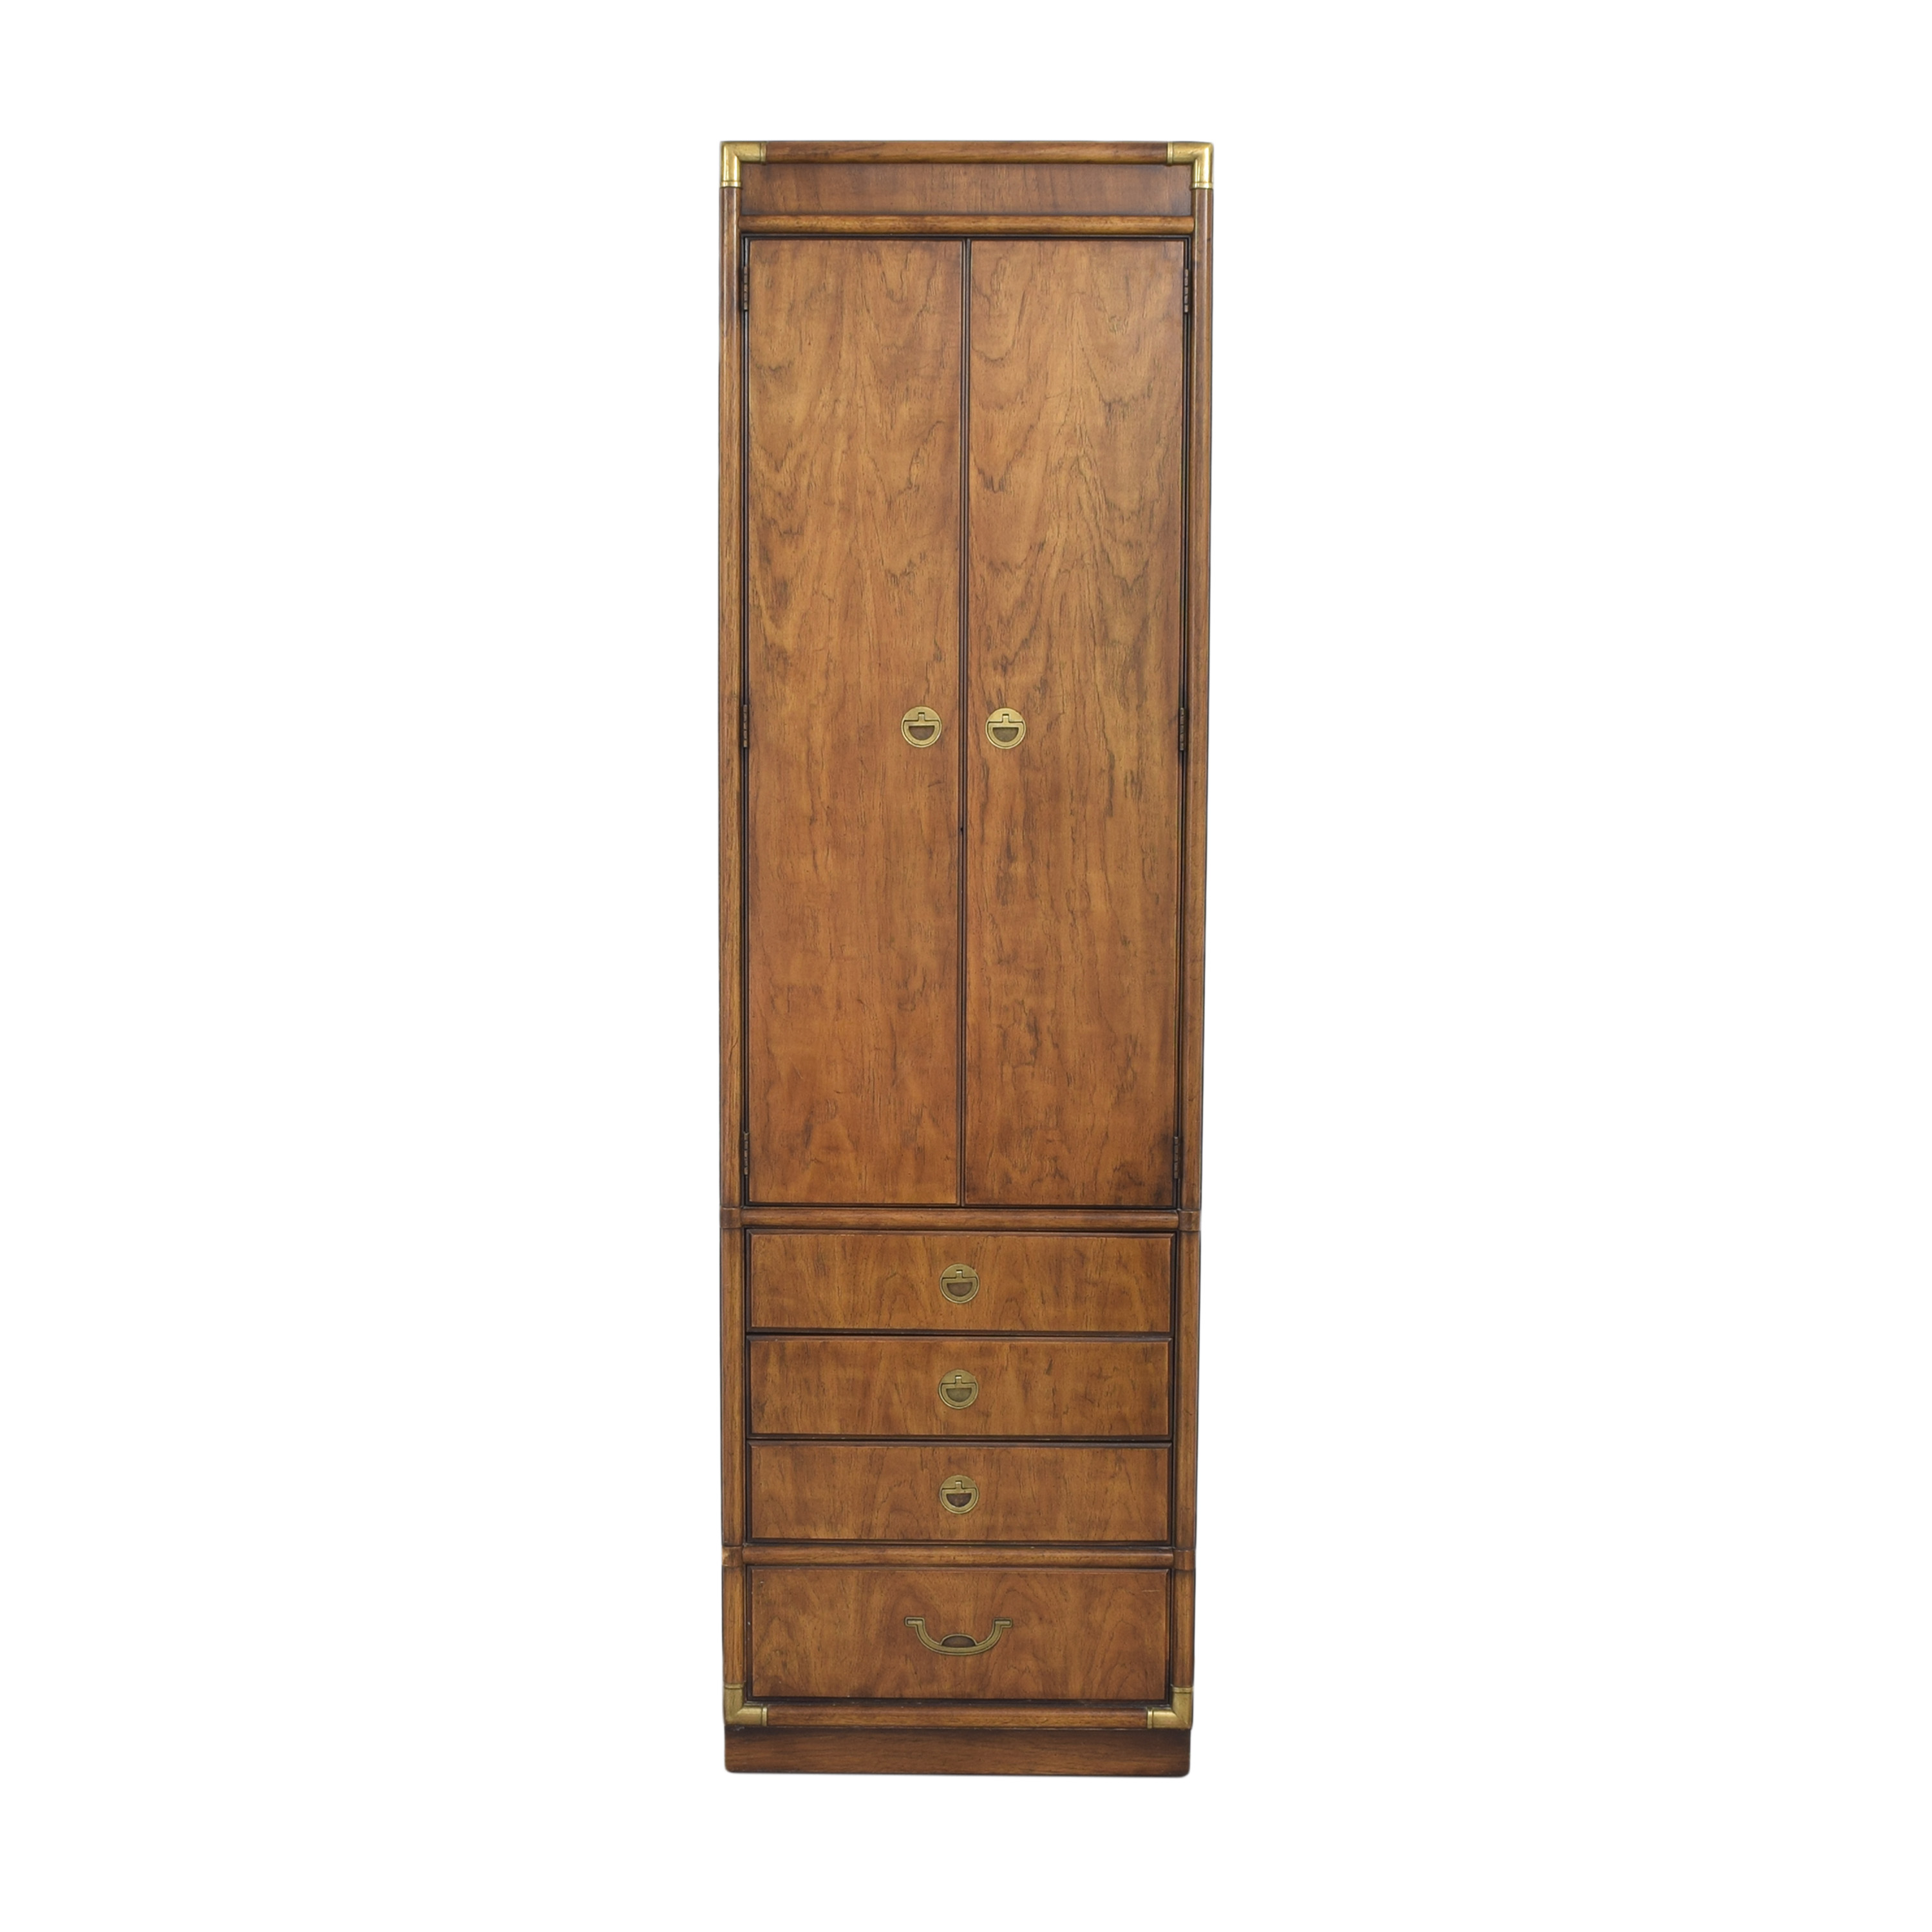 Drexel Heritage Drexel Heritage Accolade II Tall Cabinet for sale